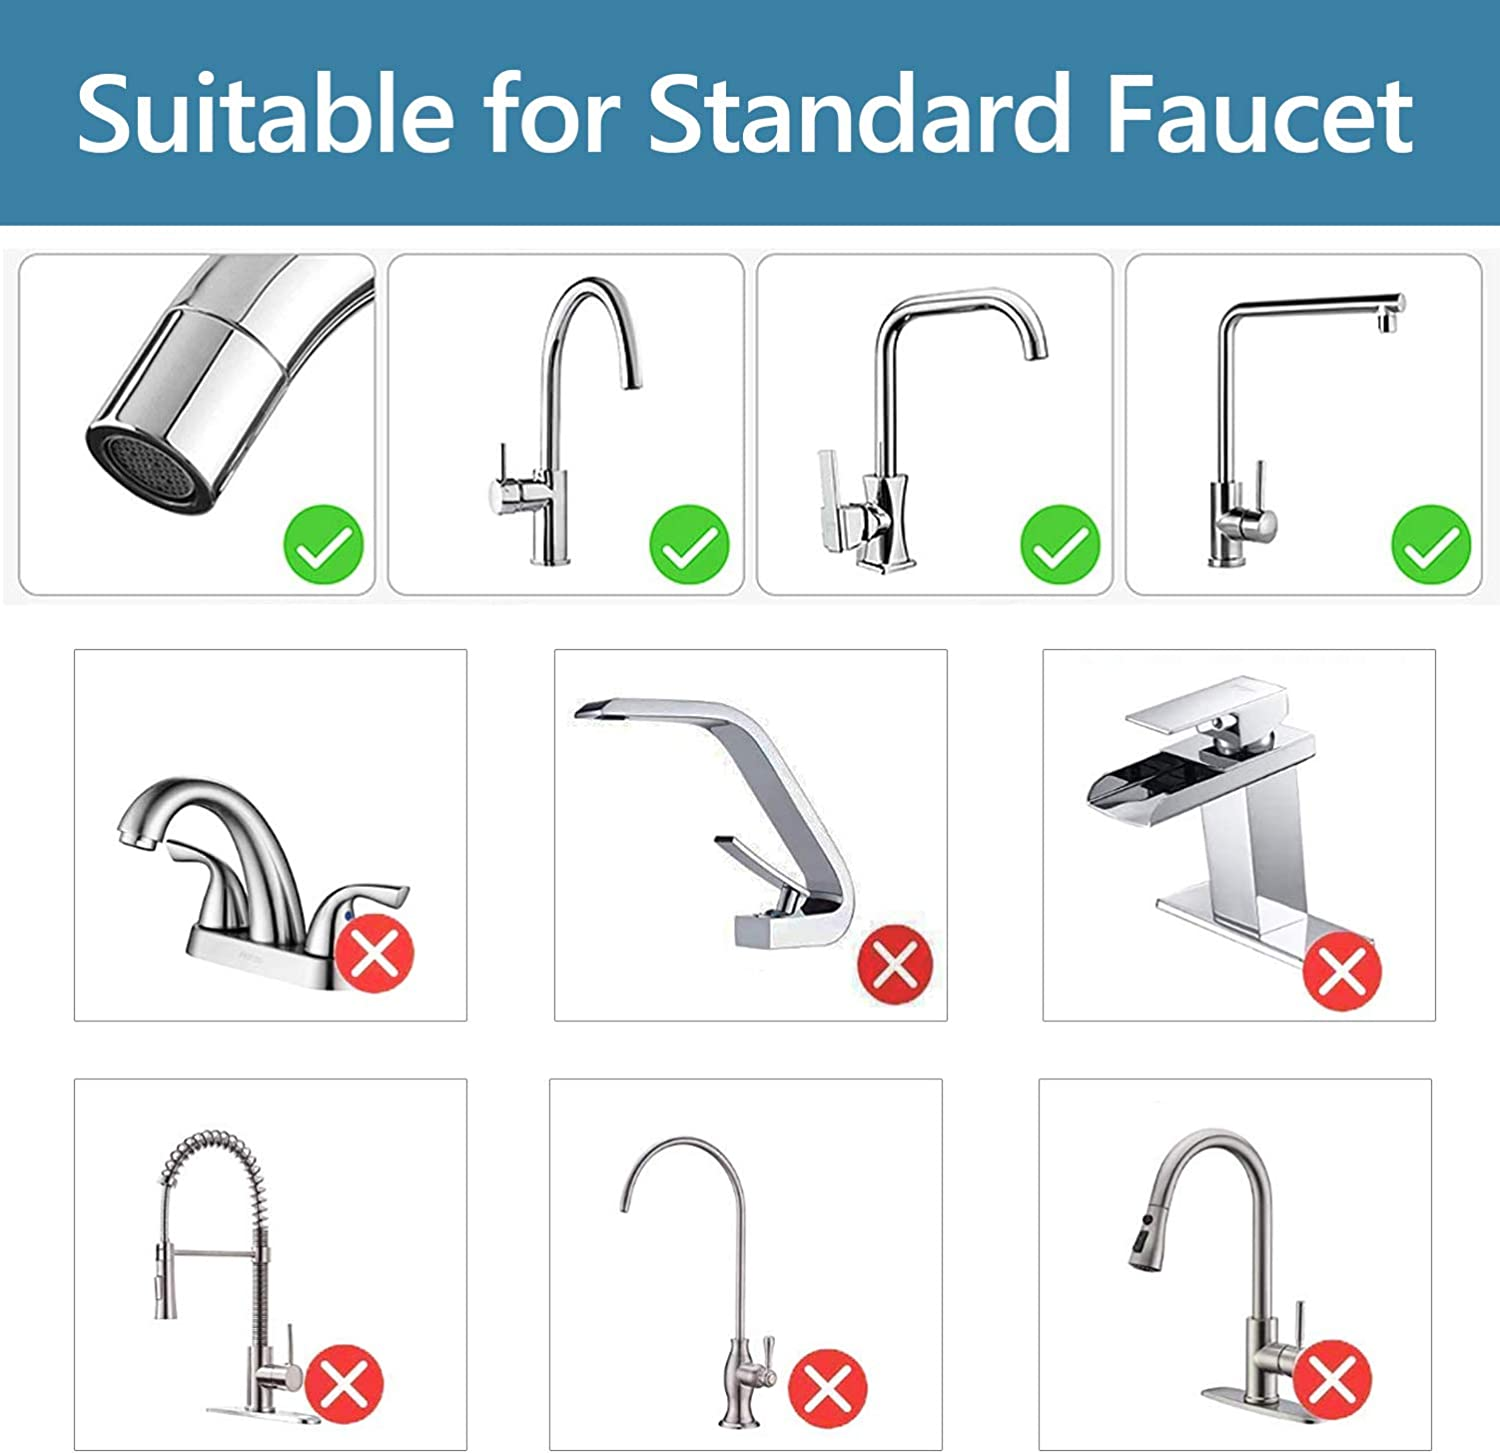 Jricoo Faucet Water Filter, 304 Stainless Steel Water Filtration System,High Water Flow Tap Water Purifier for Kitchen,Removes Lead, Flouride & Chlorine - Fits Standard Faucets: Home & Kitchen